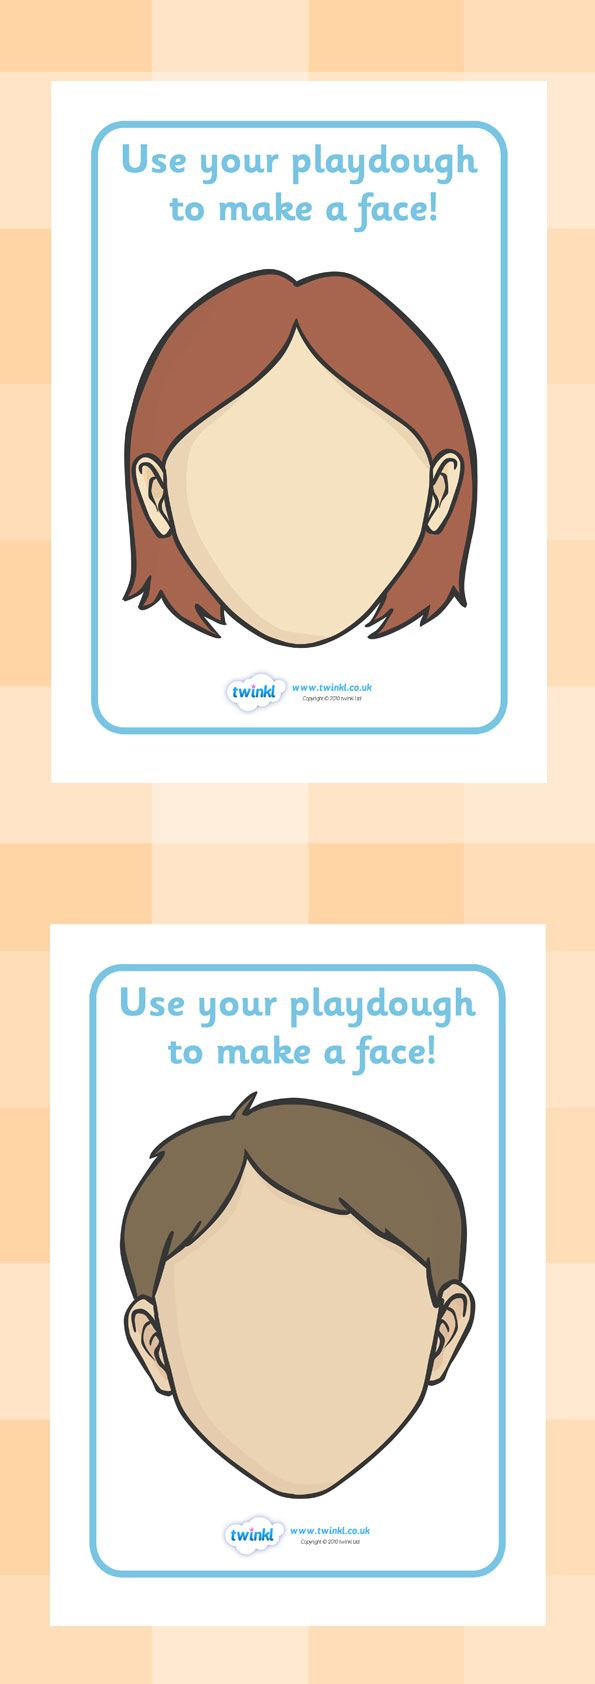 Twinkl Resources >> Faces Playdough Mats >> Classroom printables for Pre-School, Kindergarten, Elementary School and beyond! Topics, Ourselves, Playdough